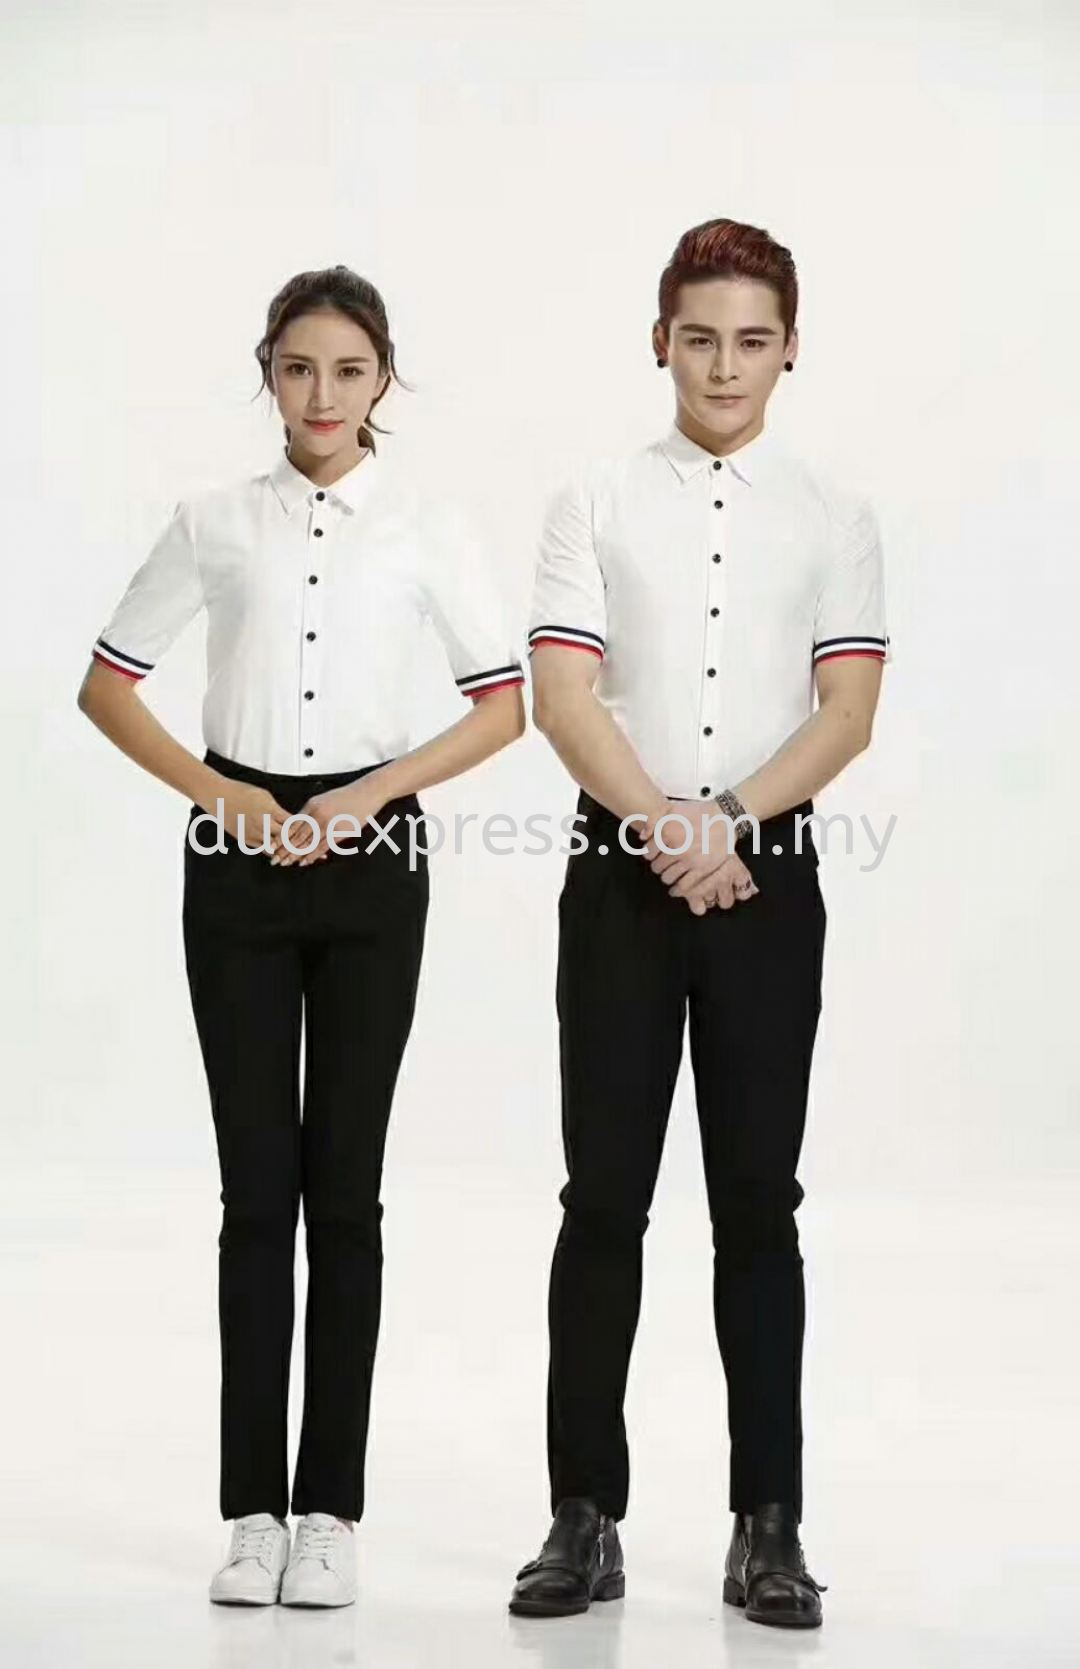 F1 Corporate Office Uniform